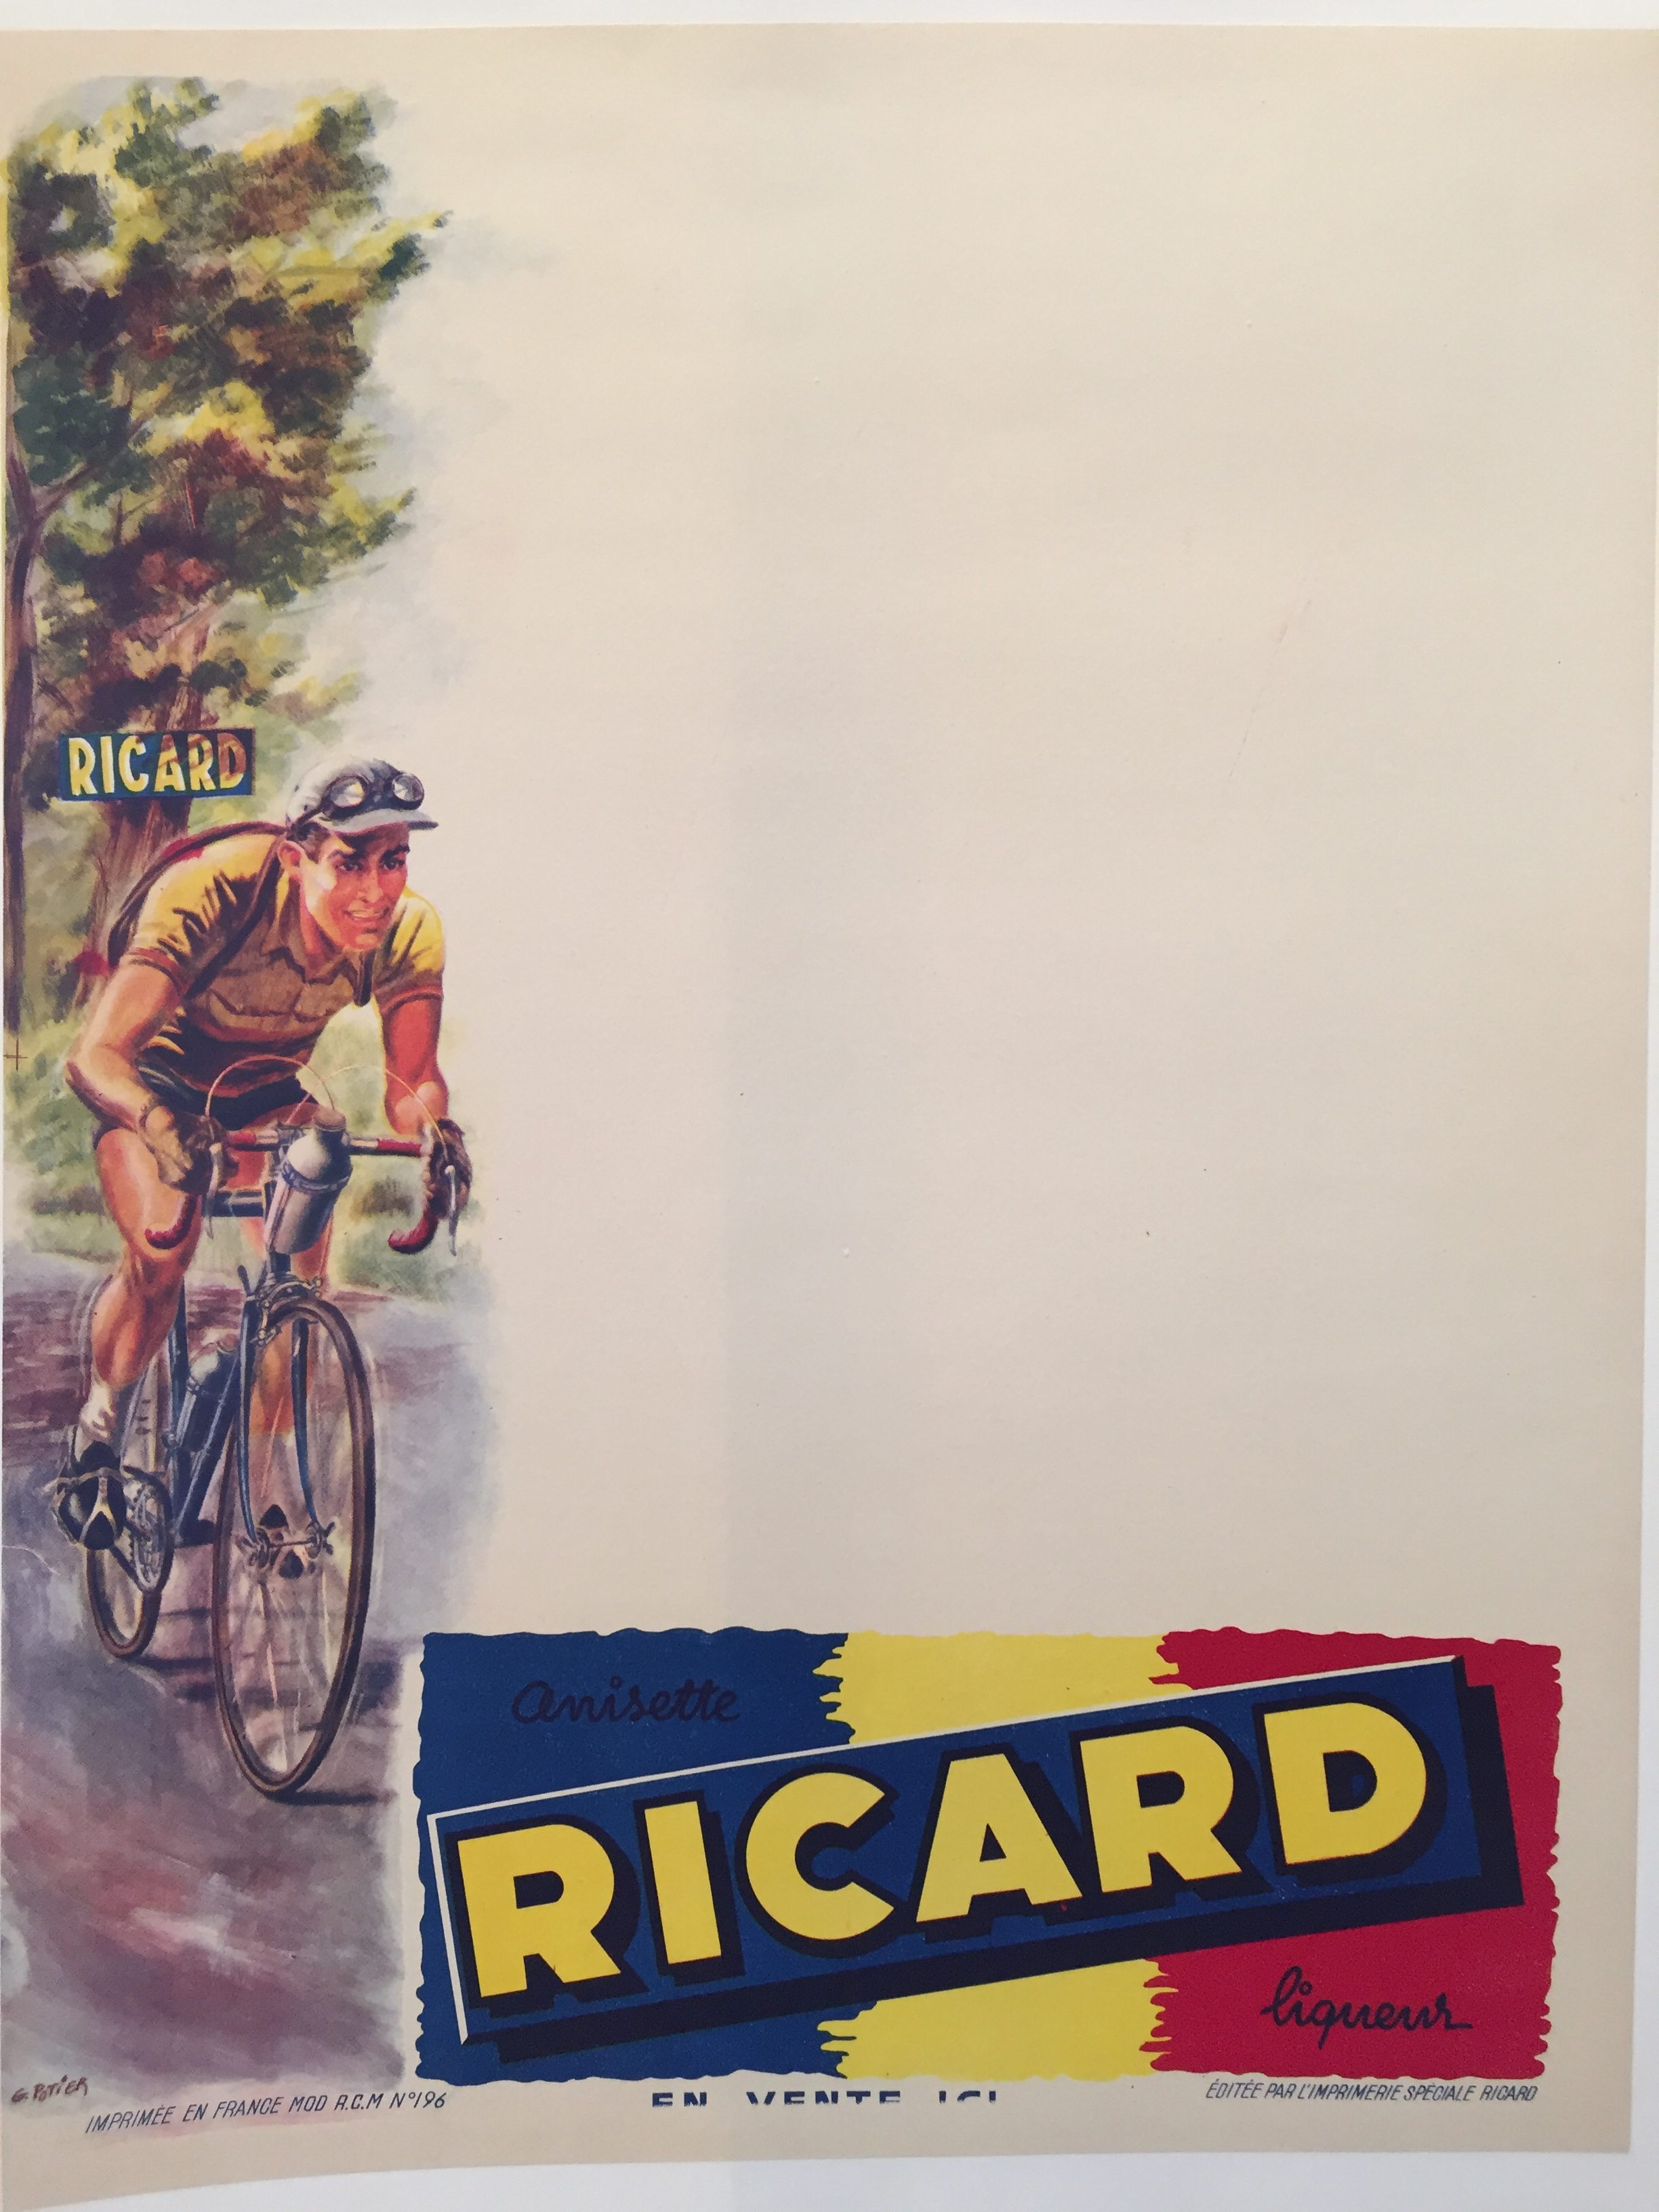 Ricard cycling bike vintage poster original